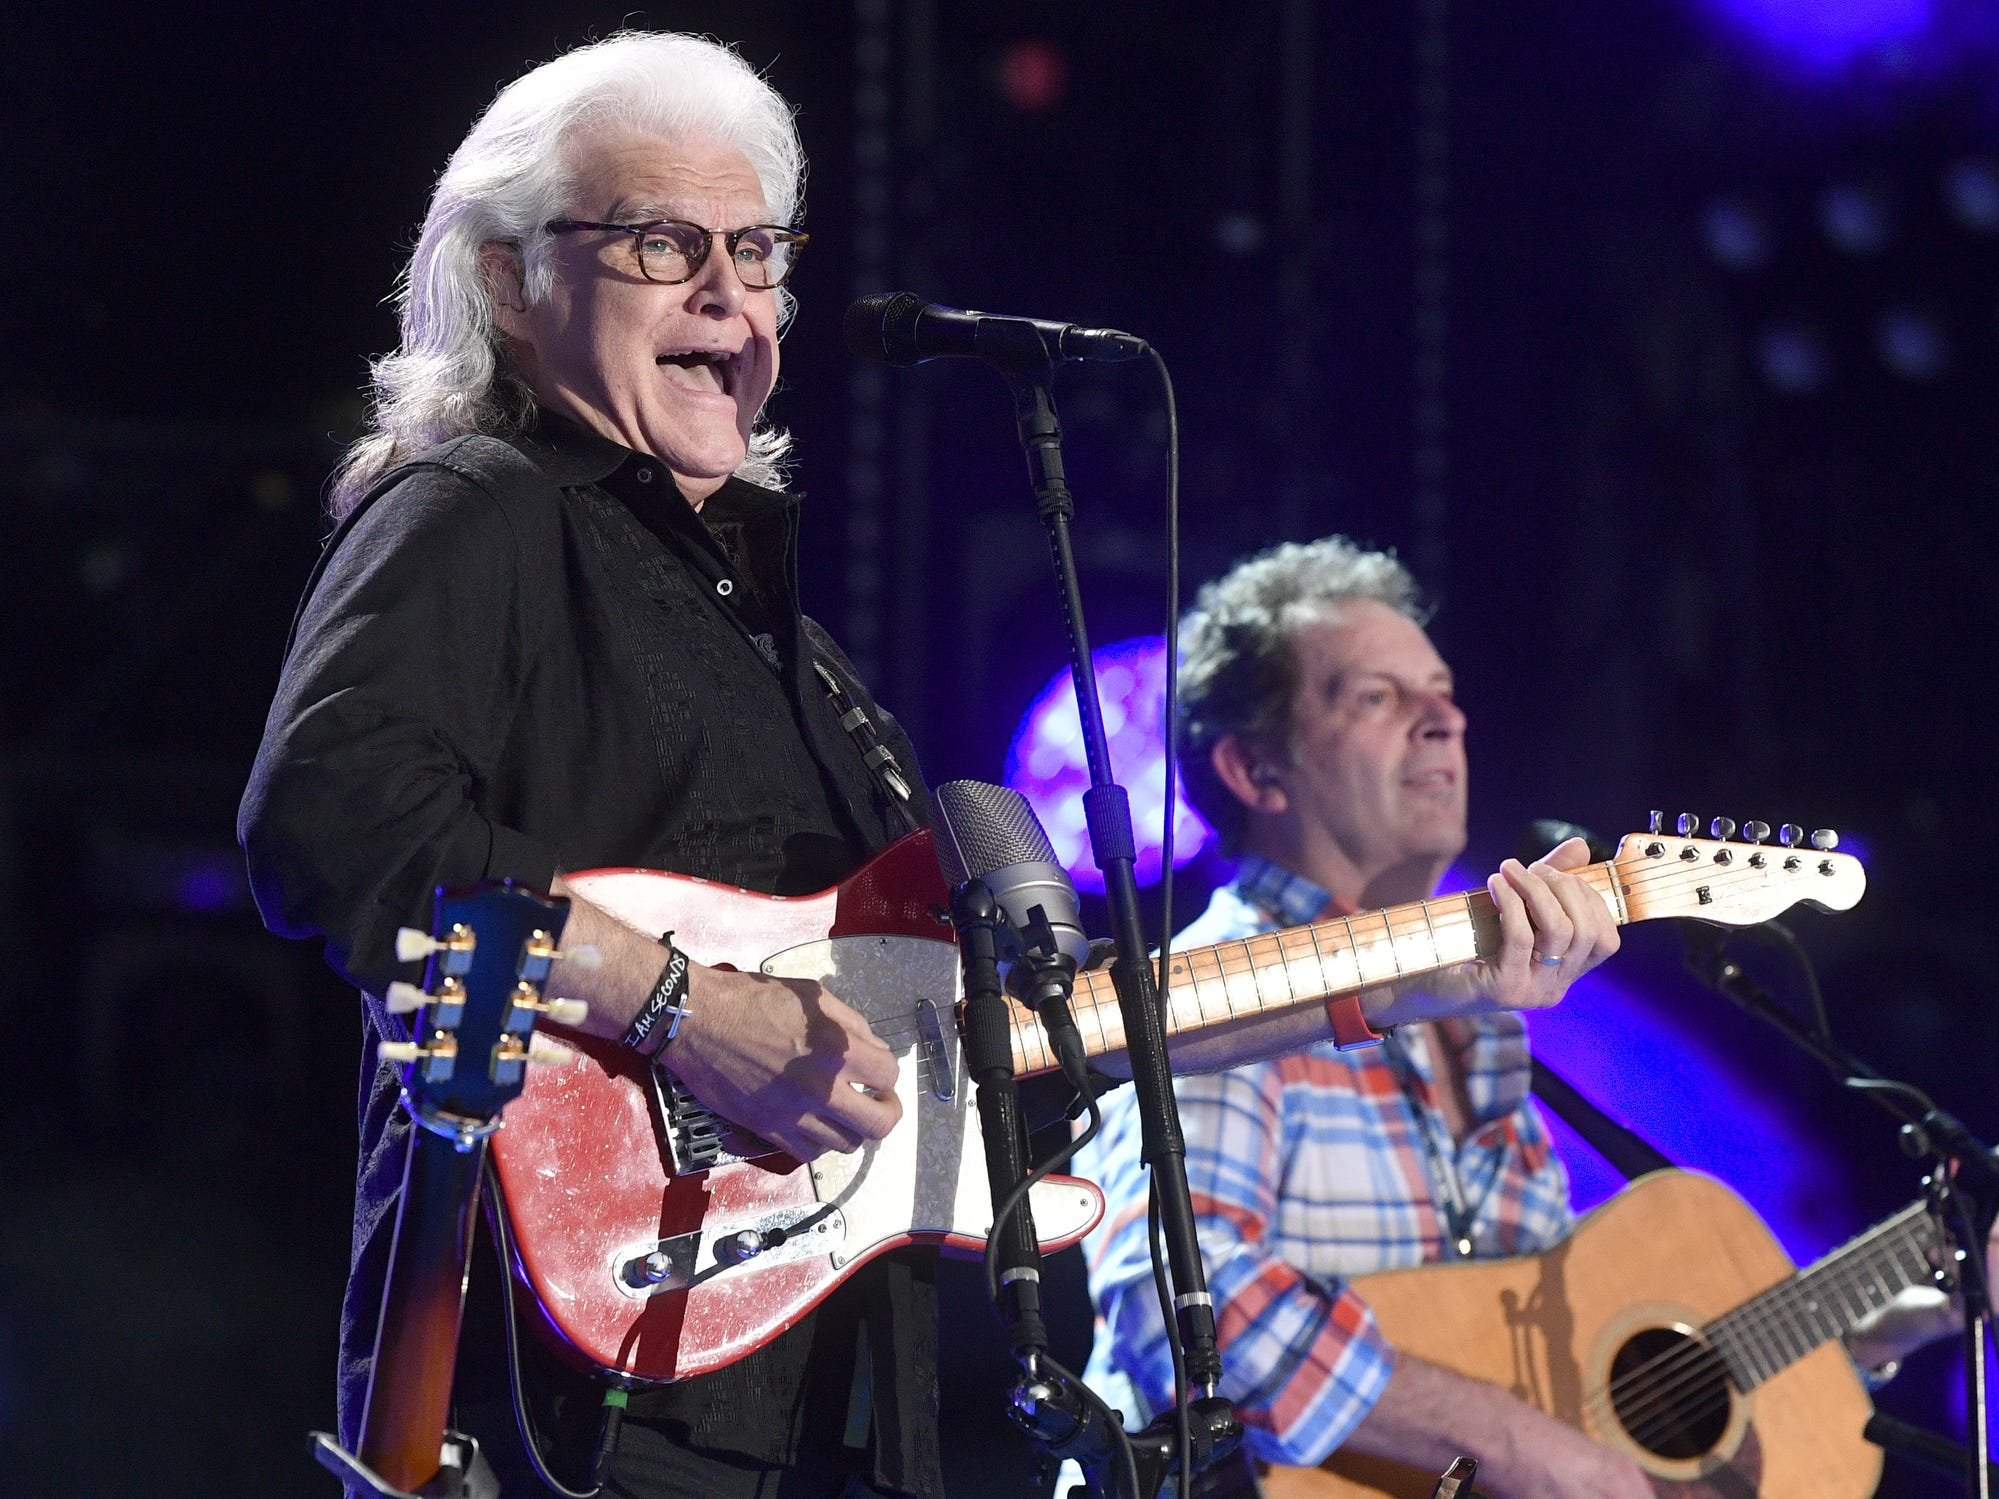 NOV. 29 